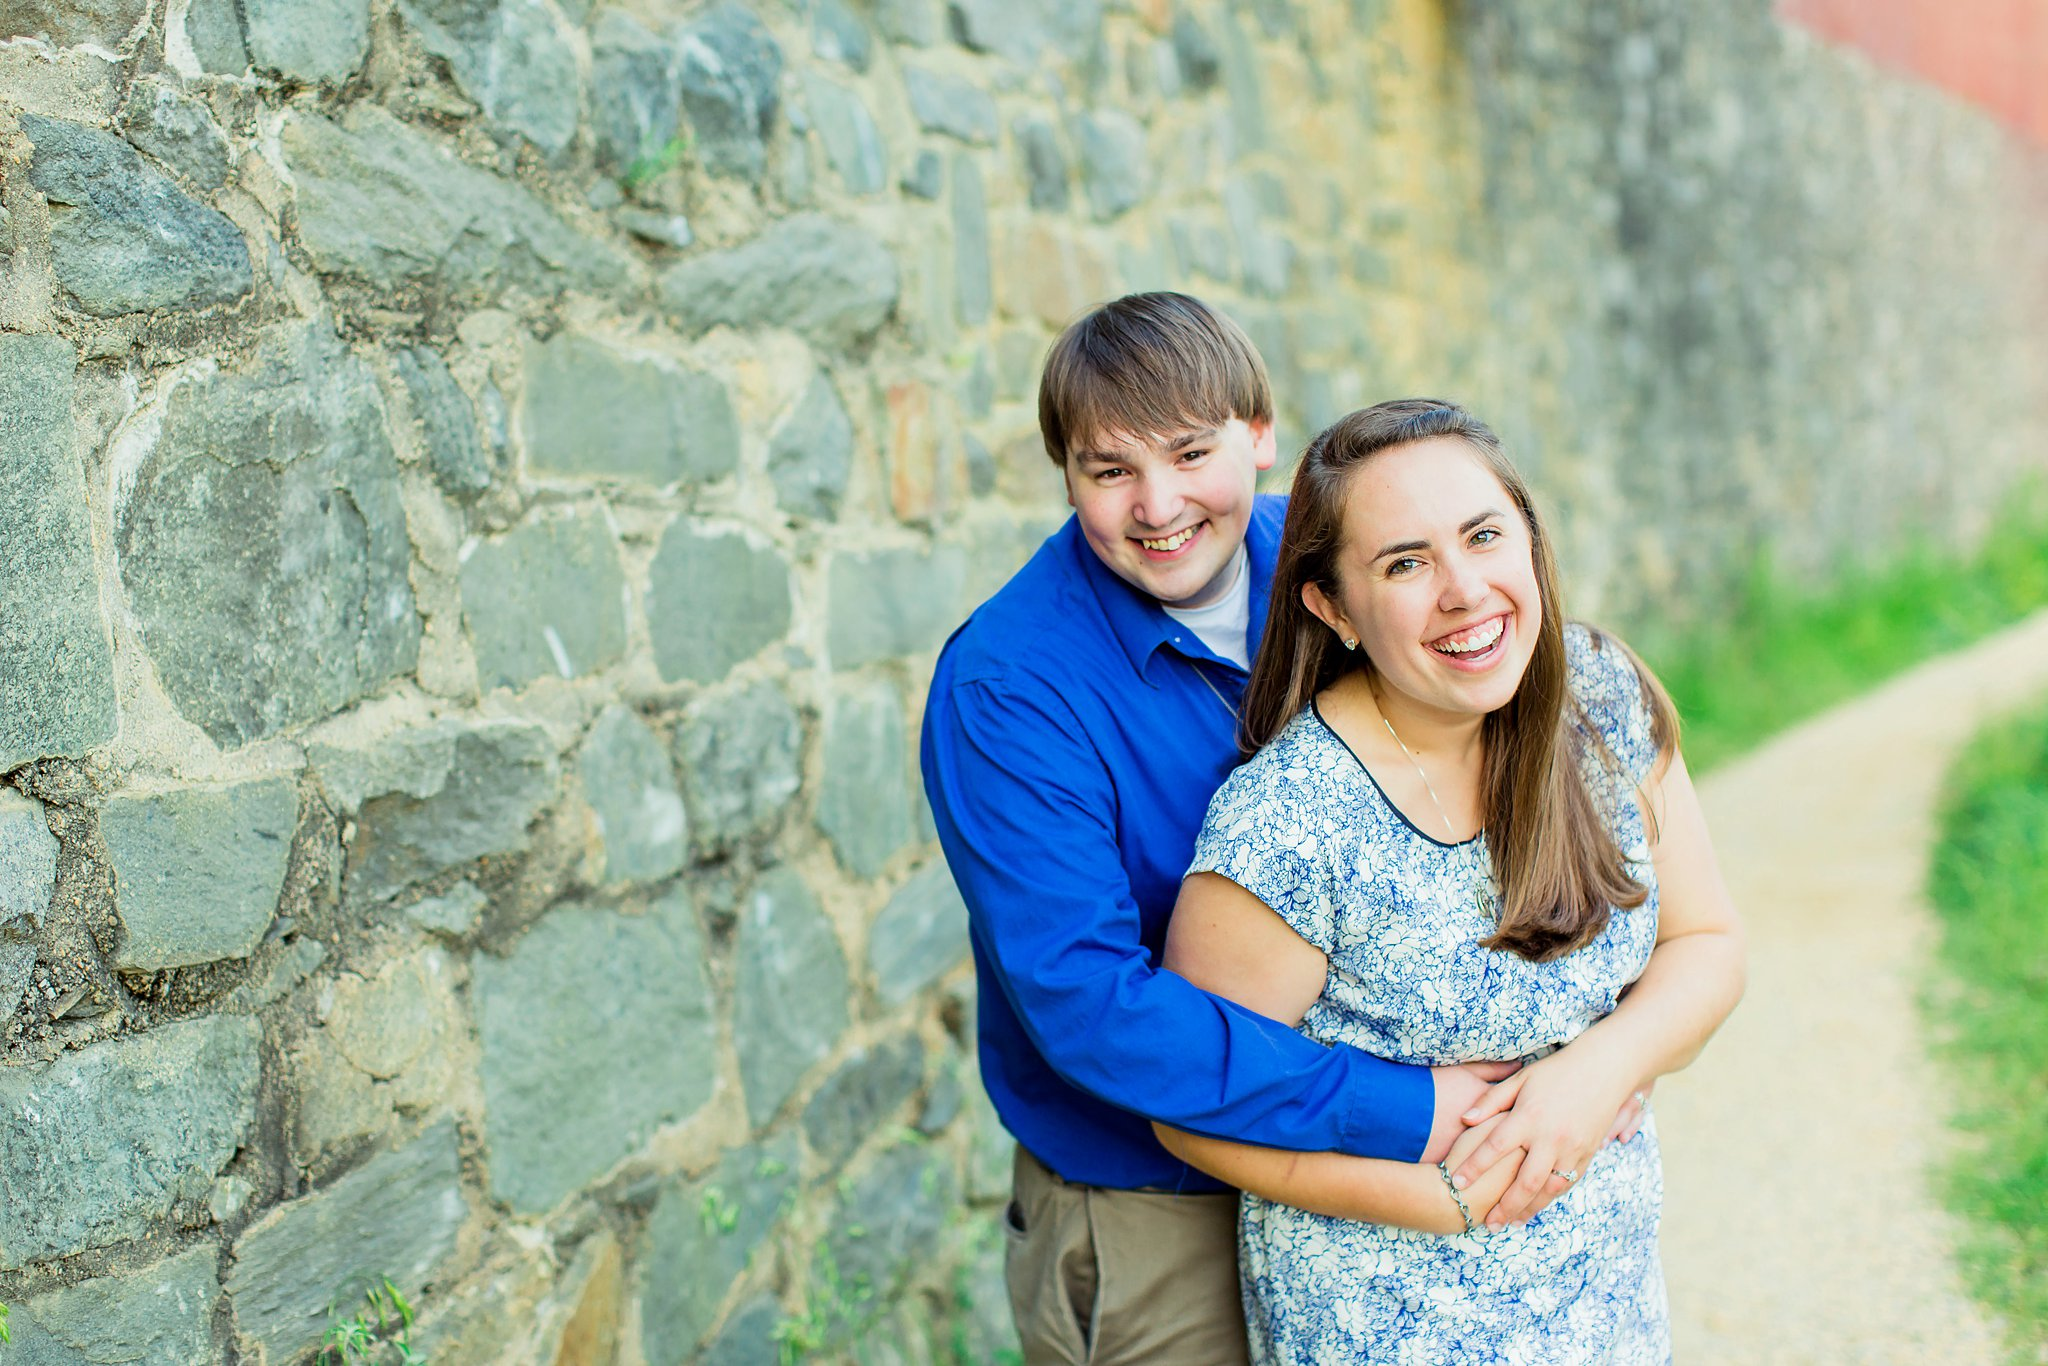 Georgetown Engagement Photography Lindsay & Joey DC Wedding Photographer-1450.jpg